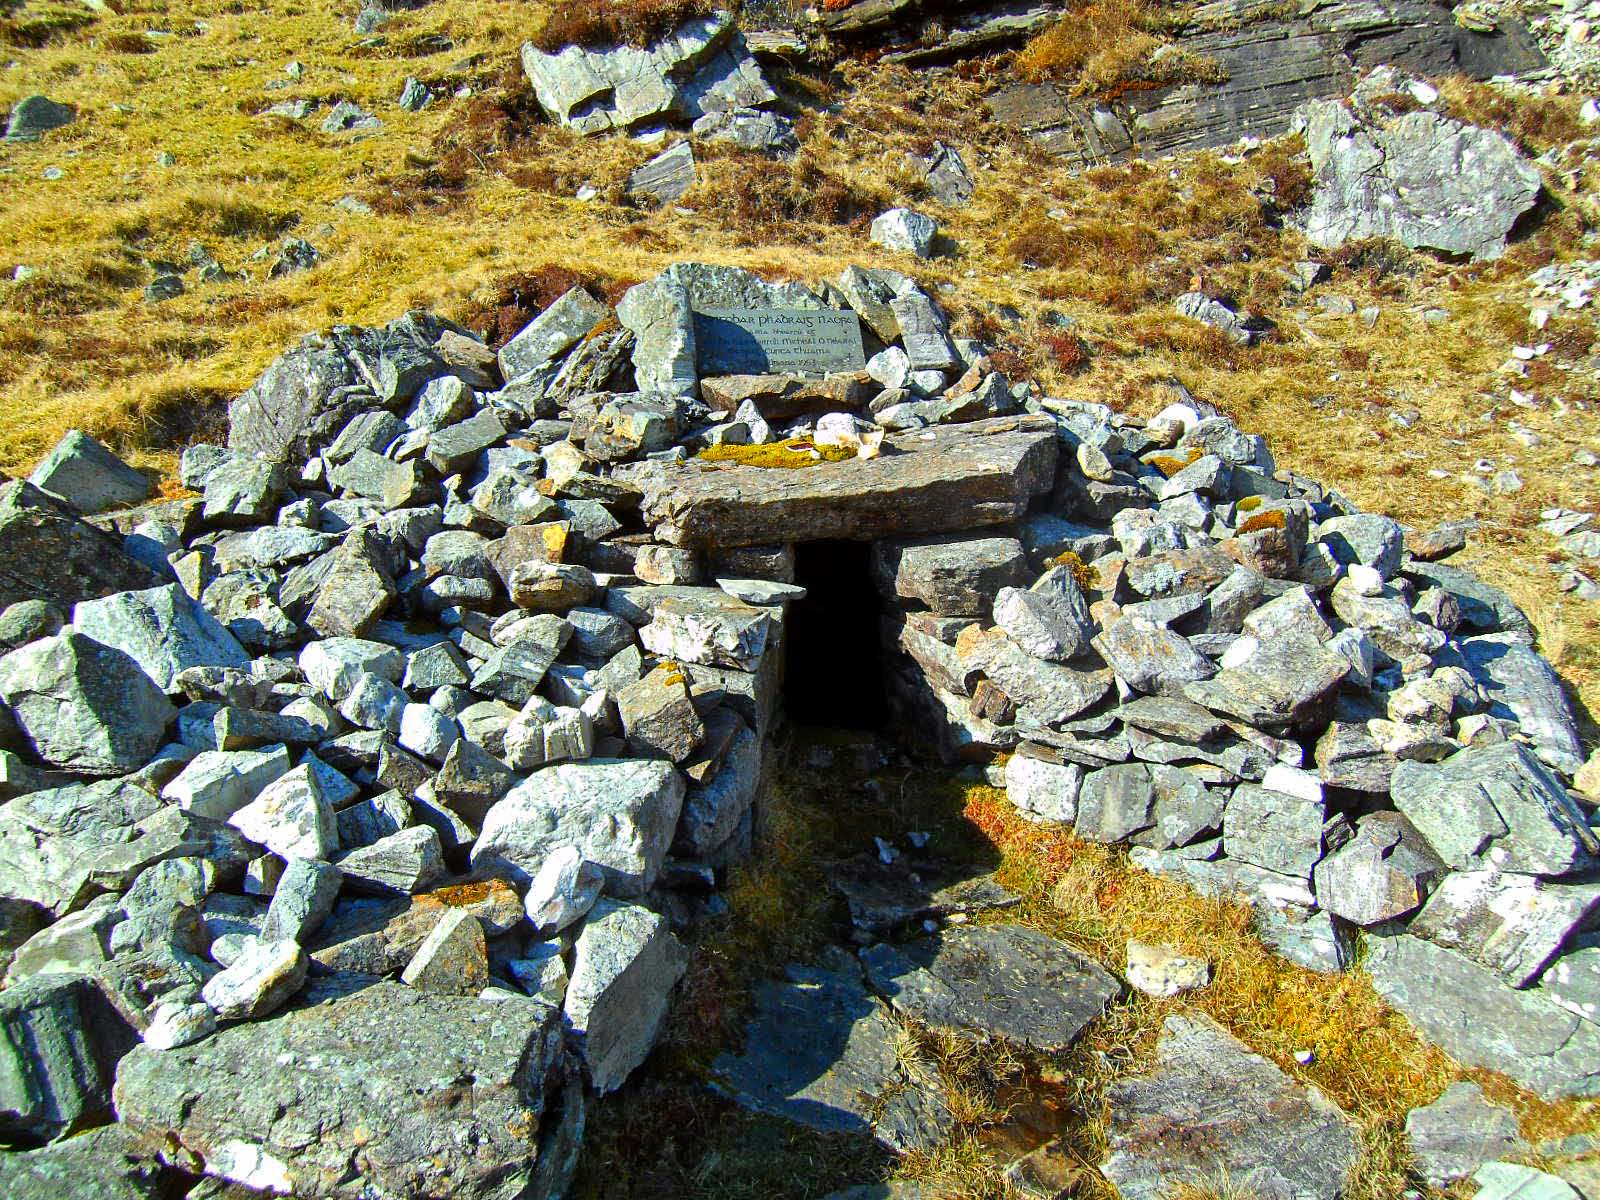 ST PARTICK'S HOLY WELL